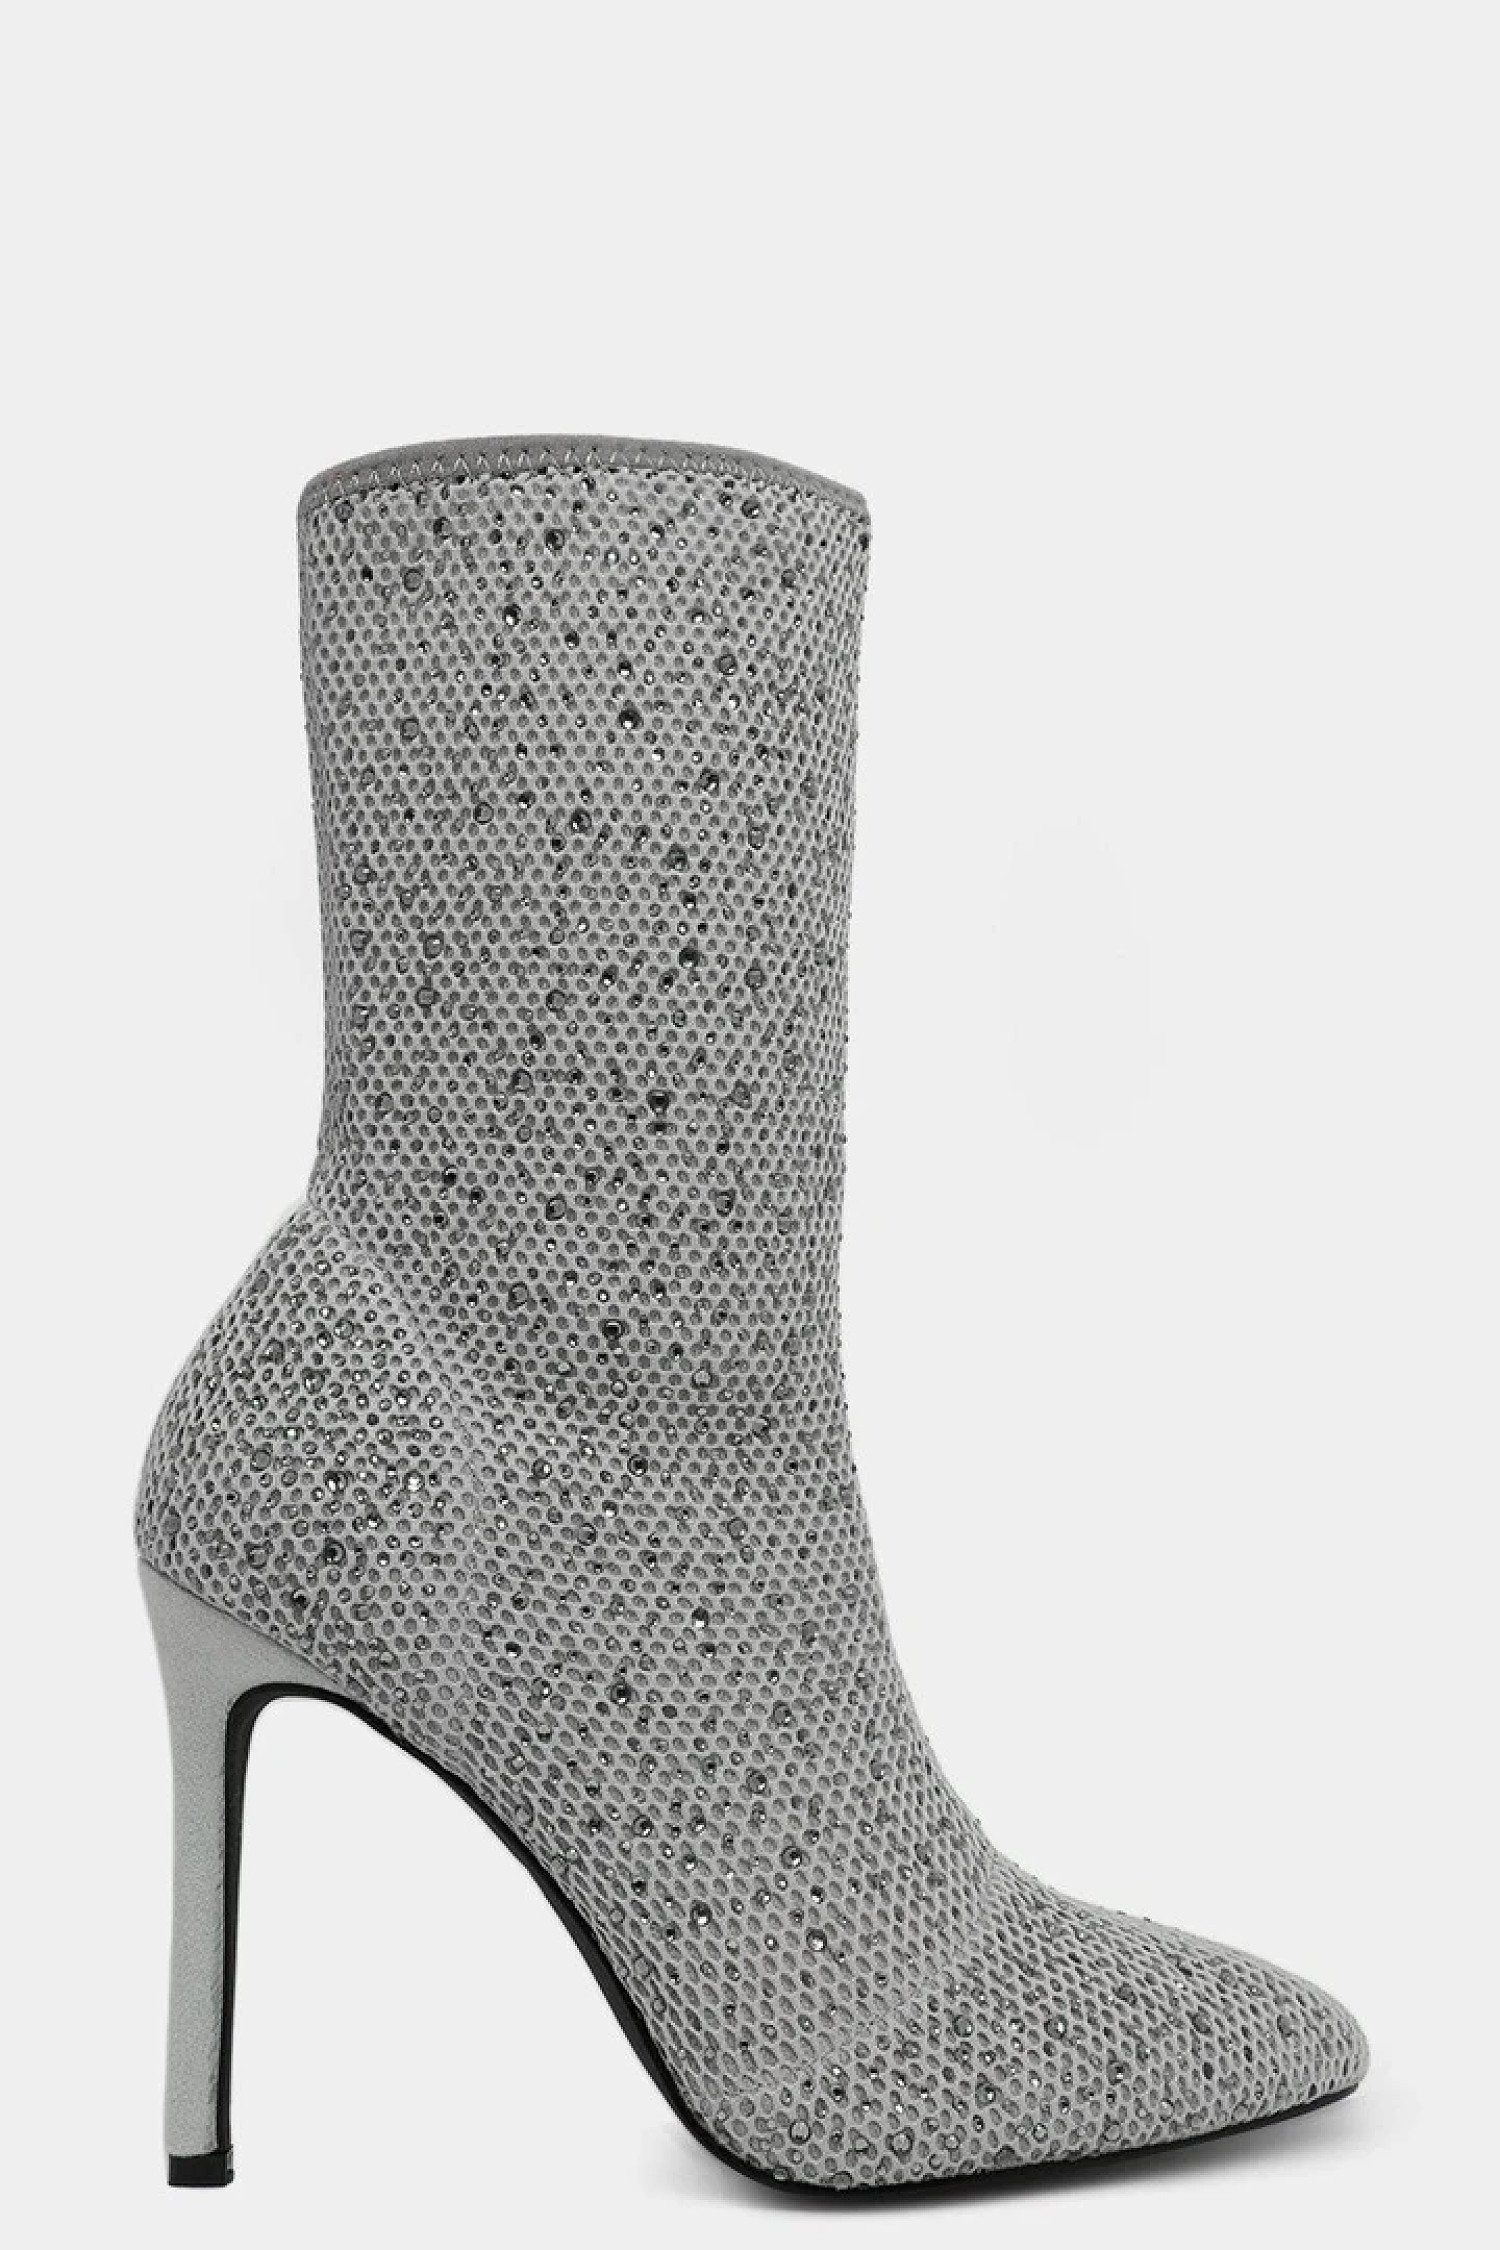 GREY CRYSTALS EMBELLISHED KNIT STILETTO BOOTS £17.99 Free Postage